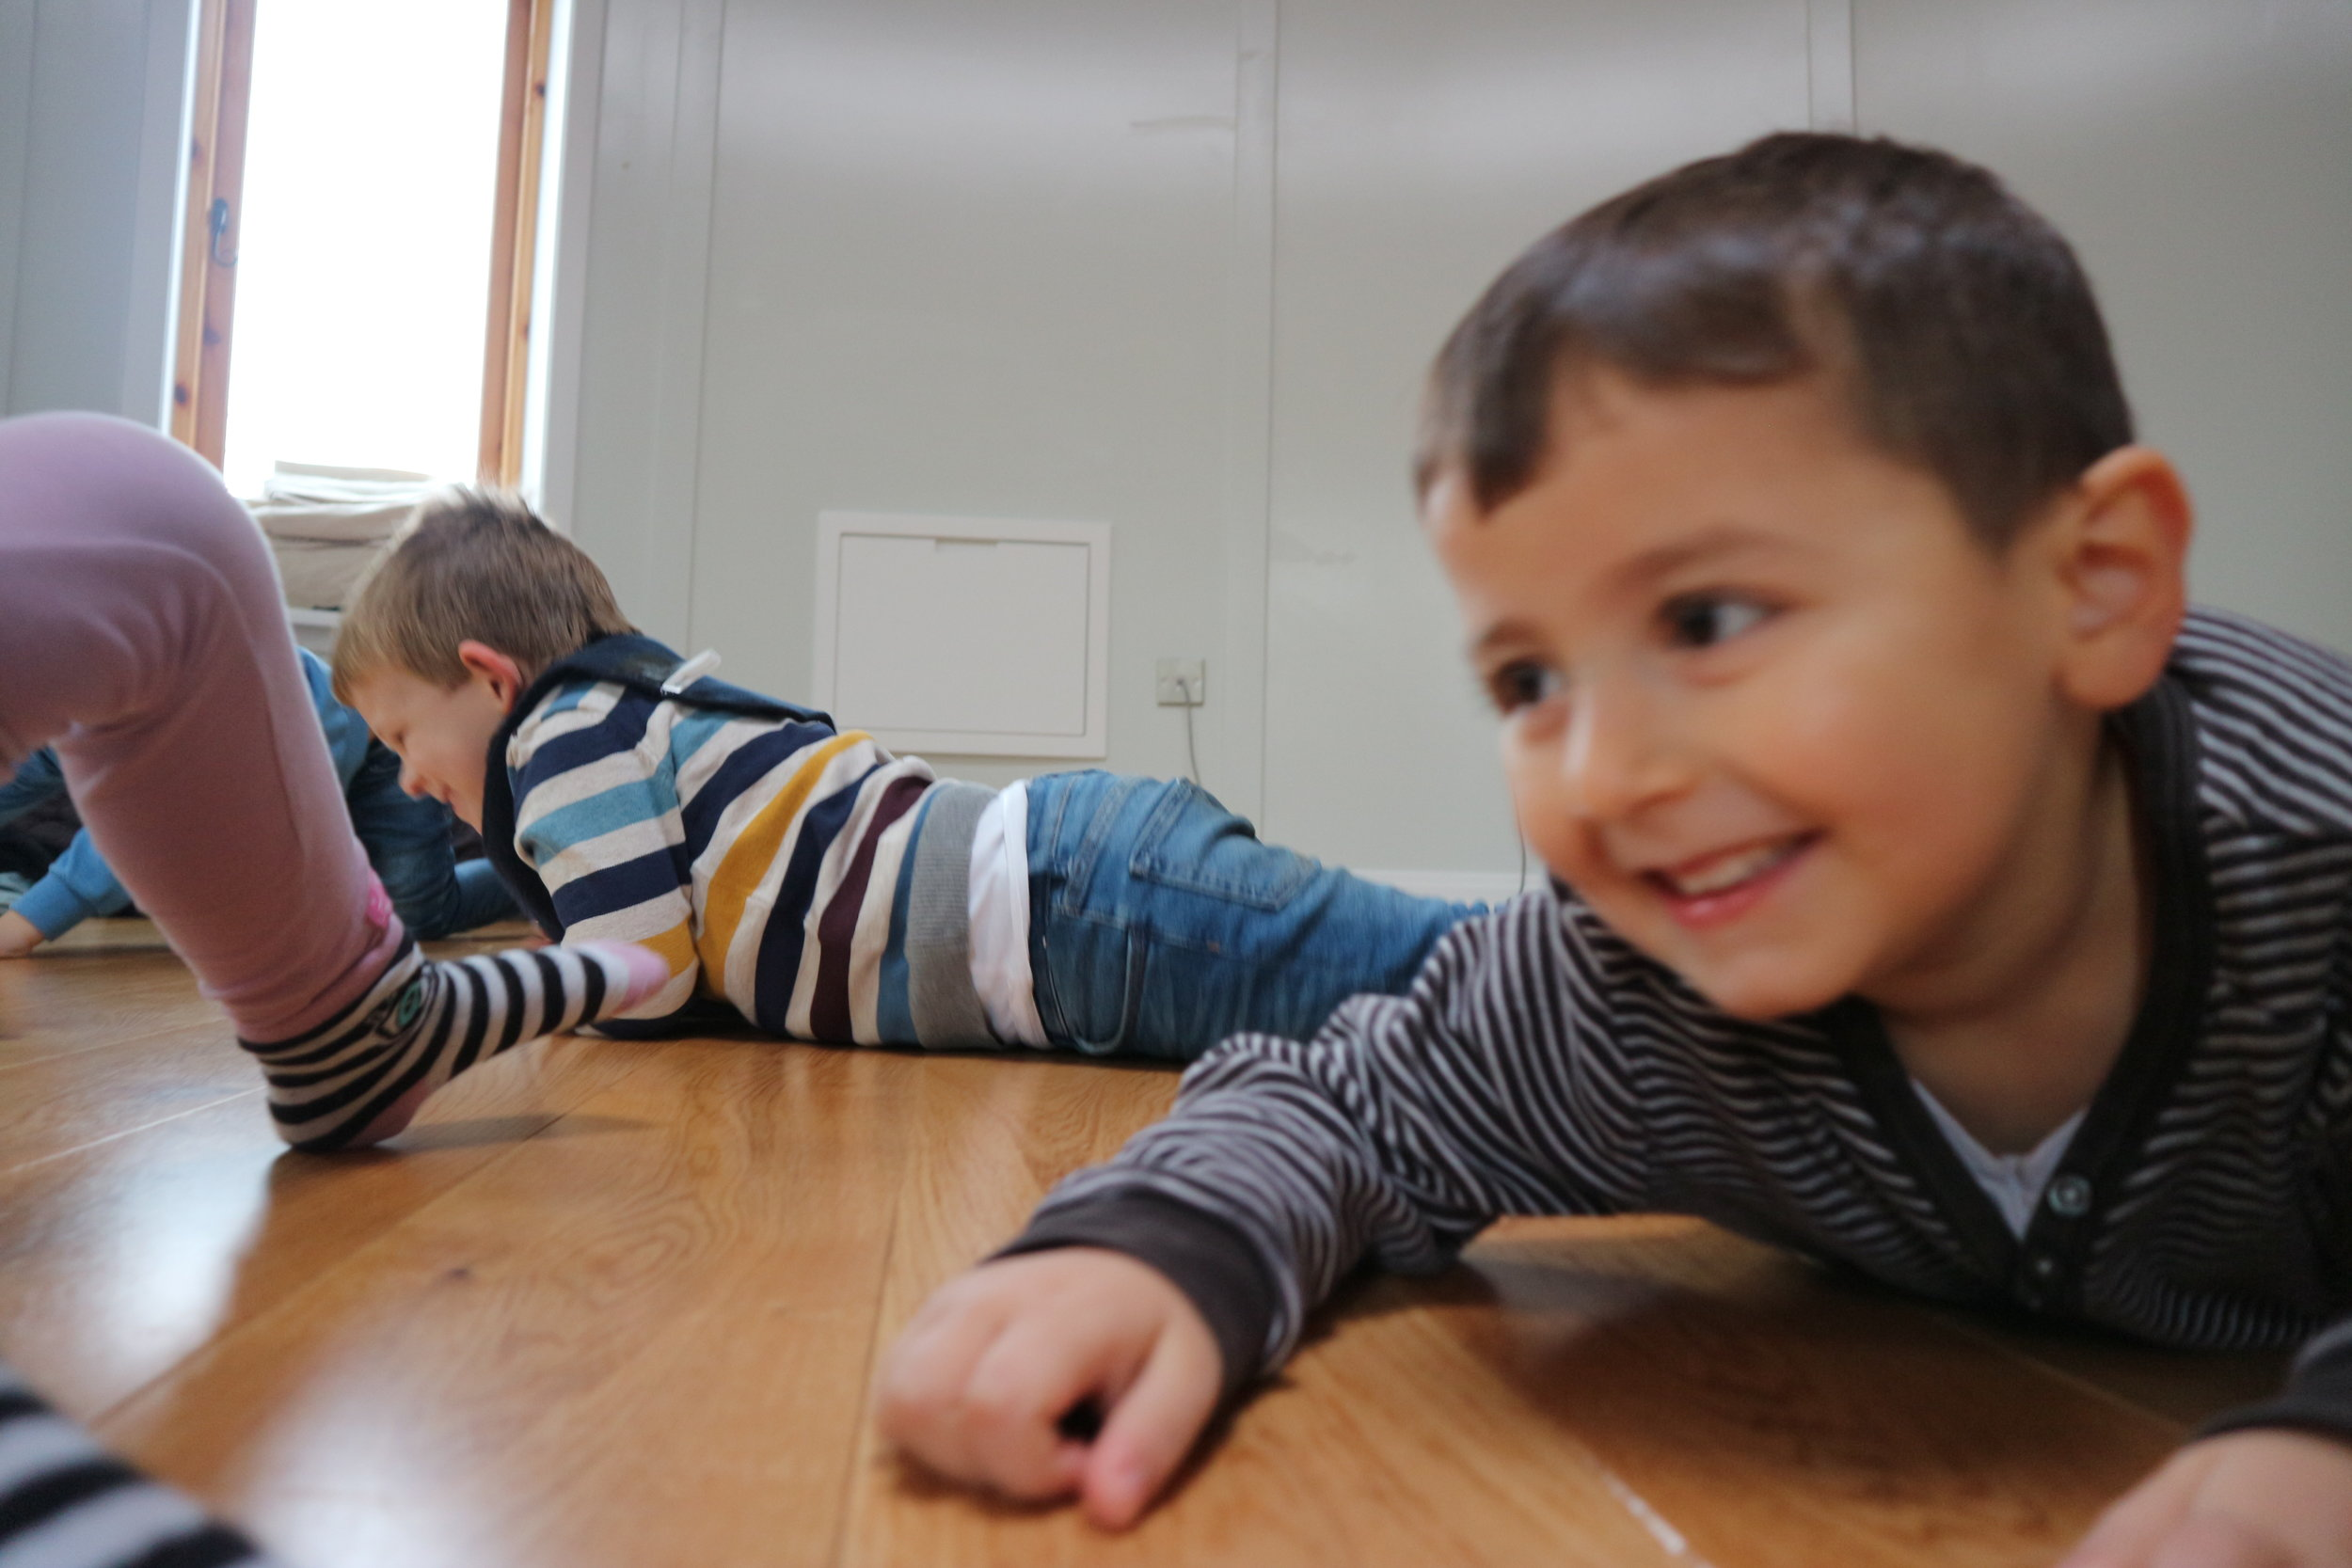 Using the floor - Sliding, rolling, stretching